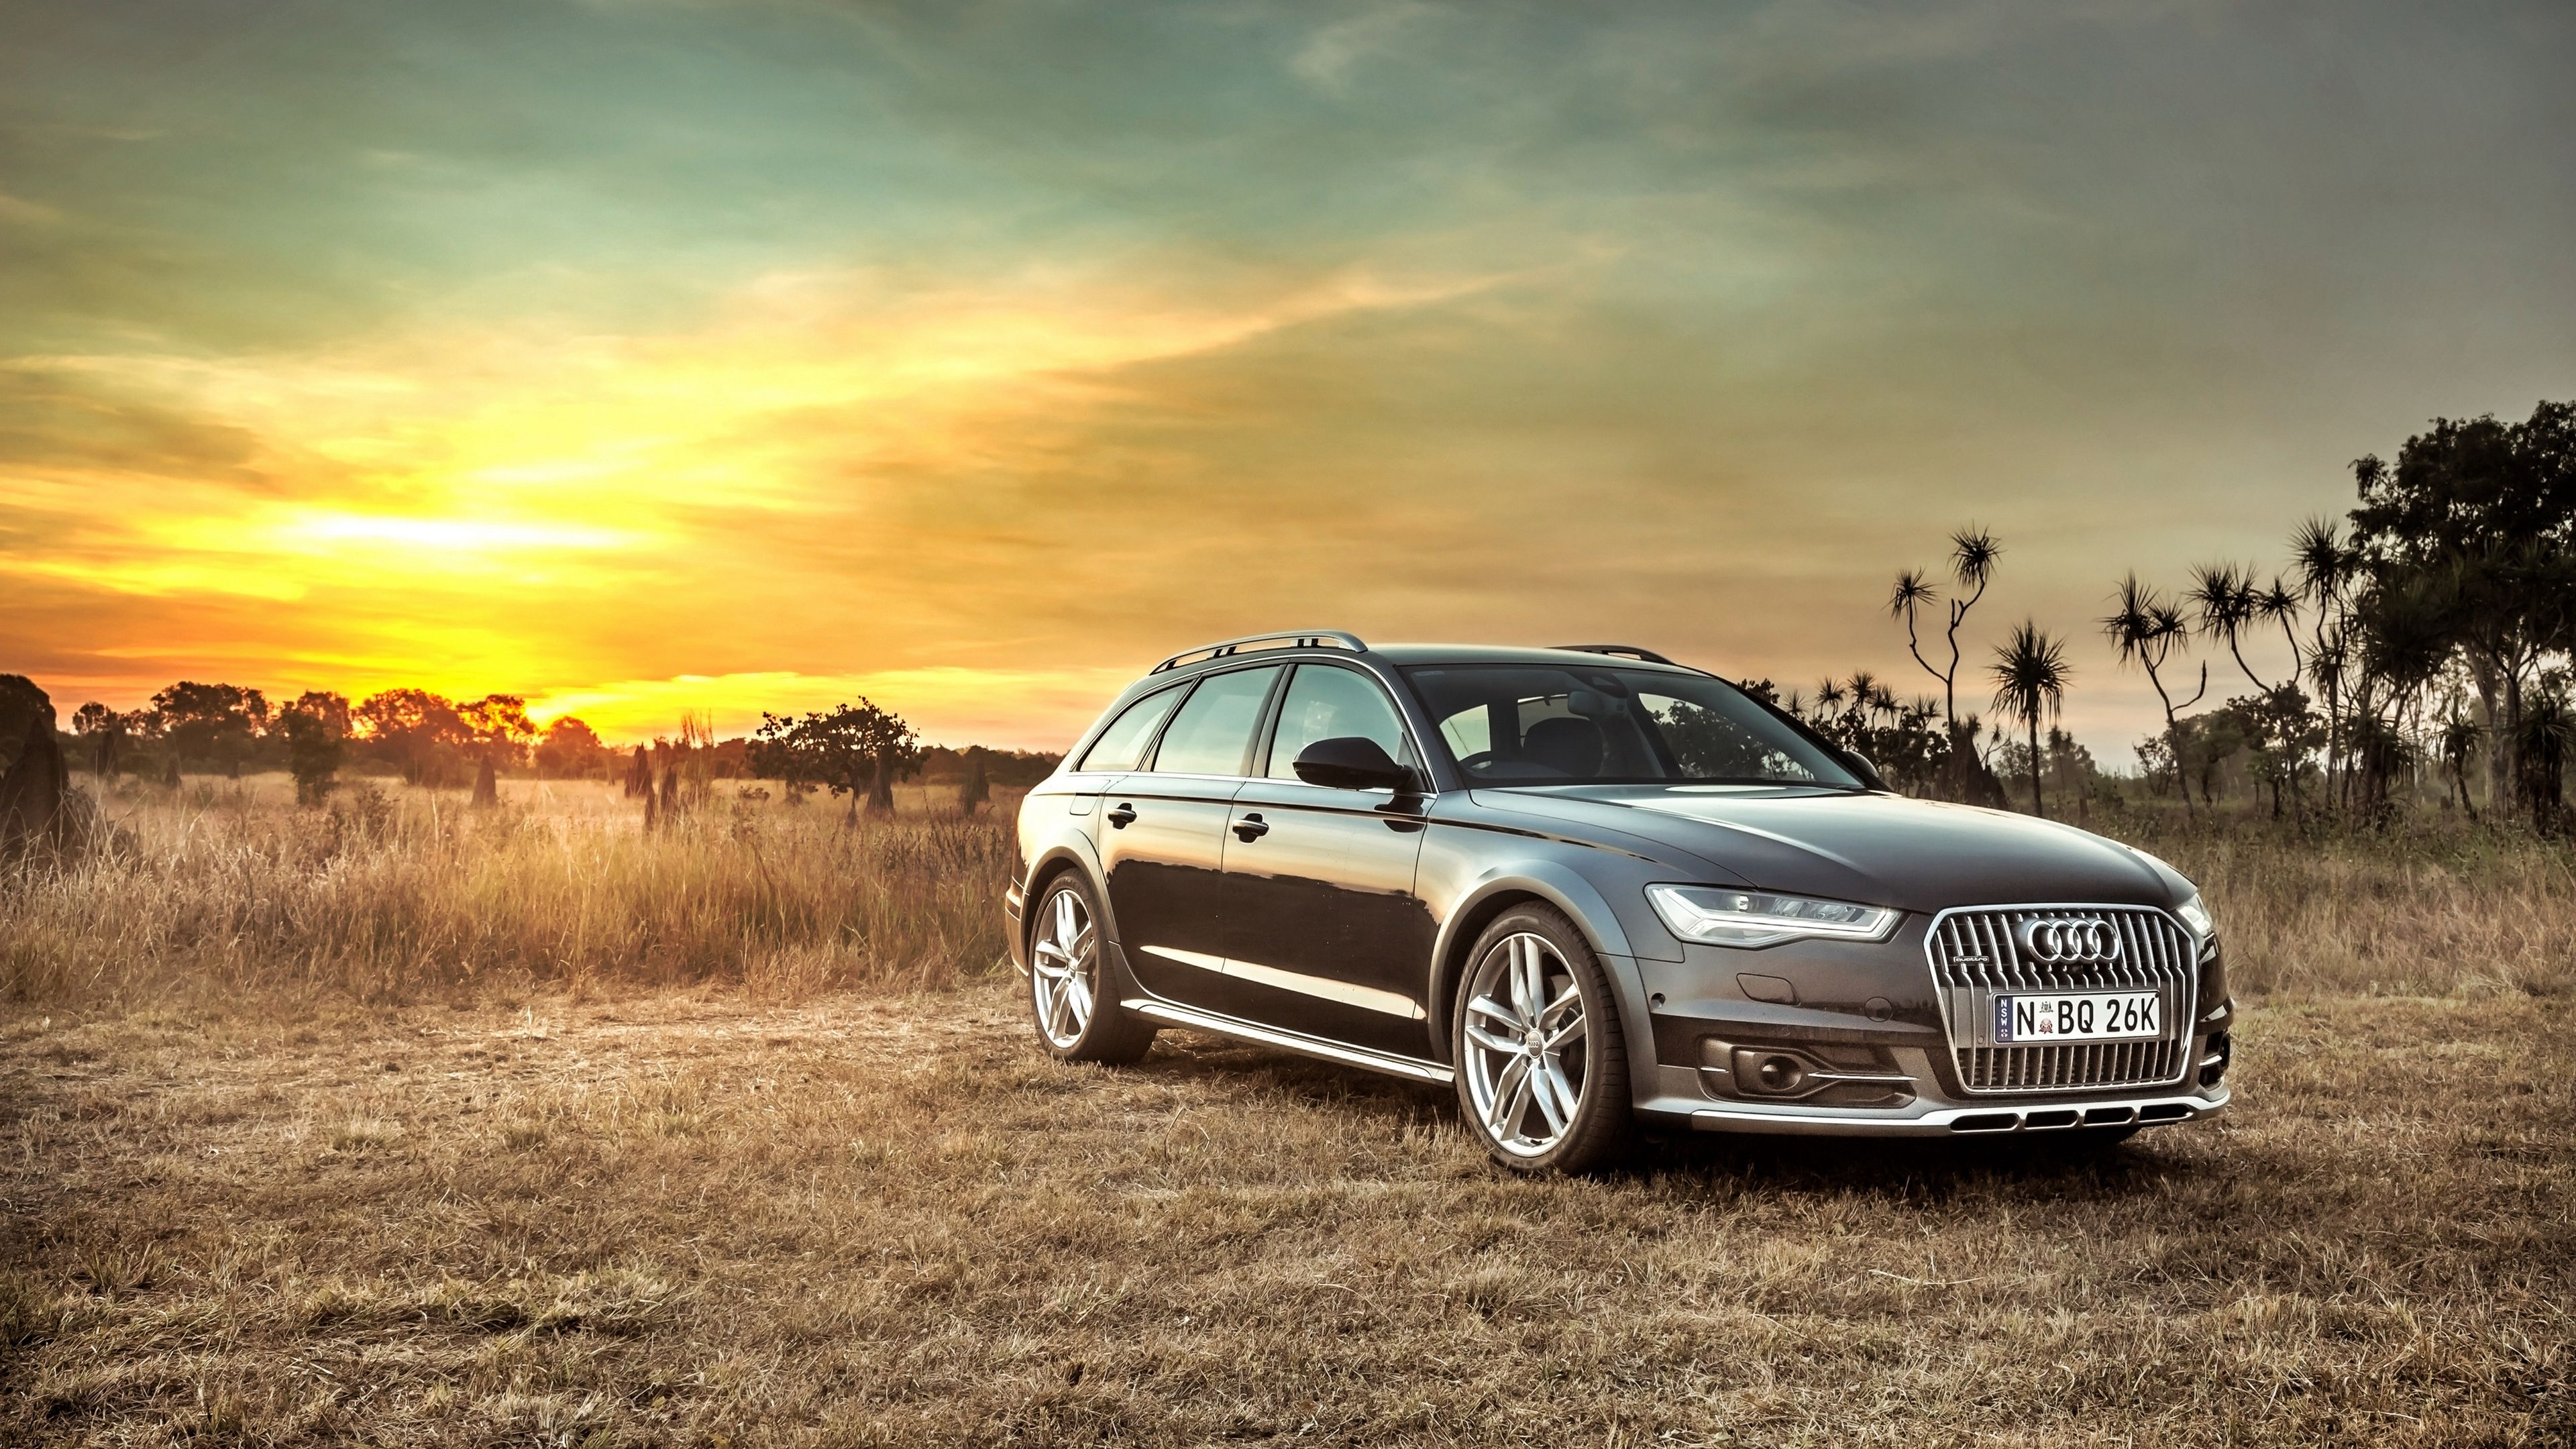 Download wallpapers 3840x2160 audi, a6, allroad, side view, hdr 4k